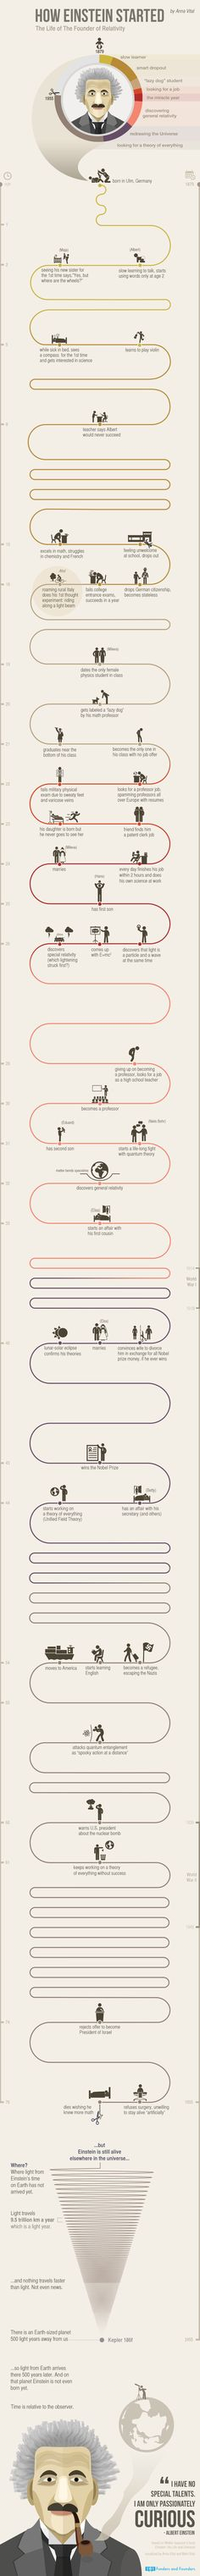 How Einstein Started The Life of The Founder of Relativity #infographic #Einstein #Life #History